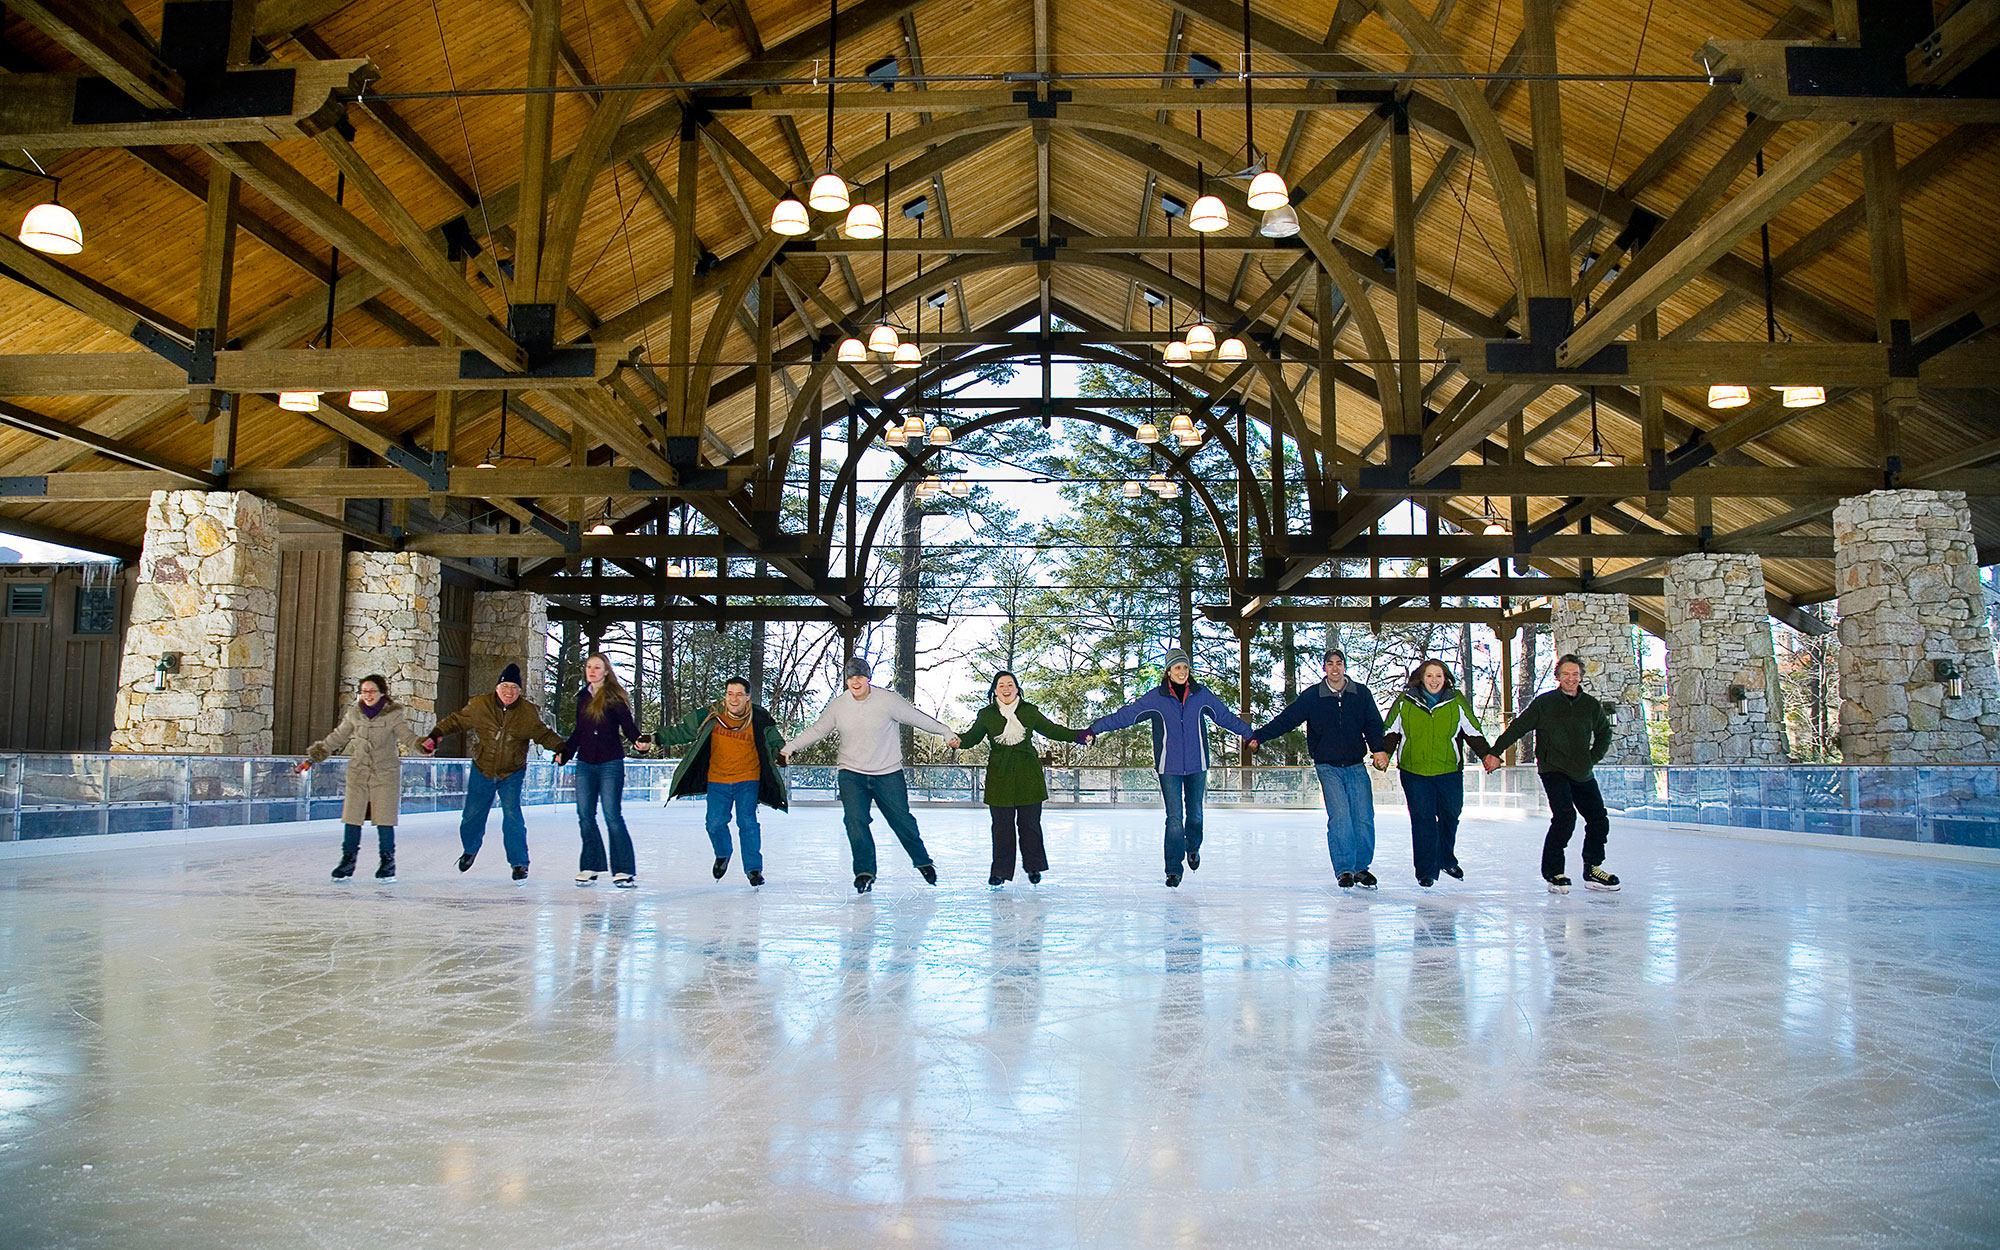 Hotel Ice Skating Rinks: Mohonk Mountain House, New Paltz, New York